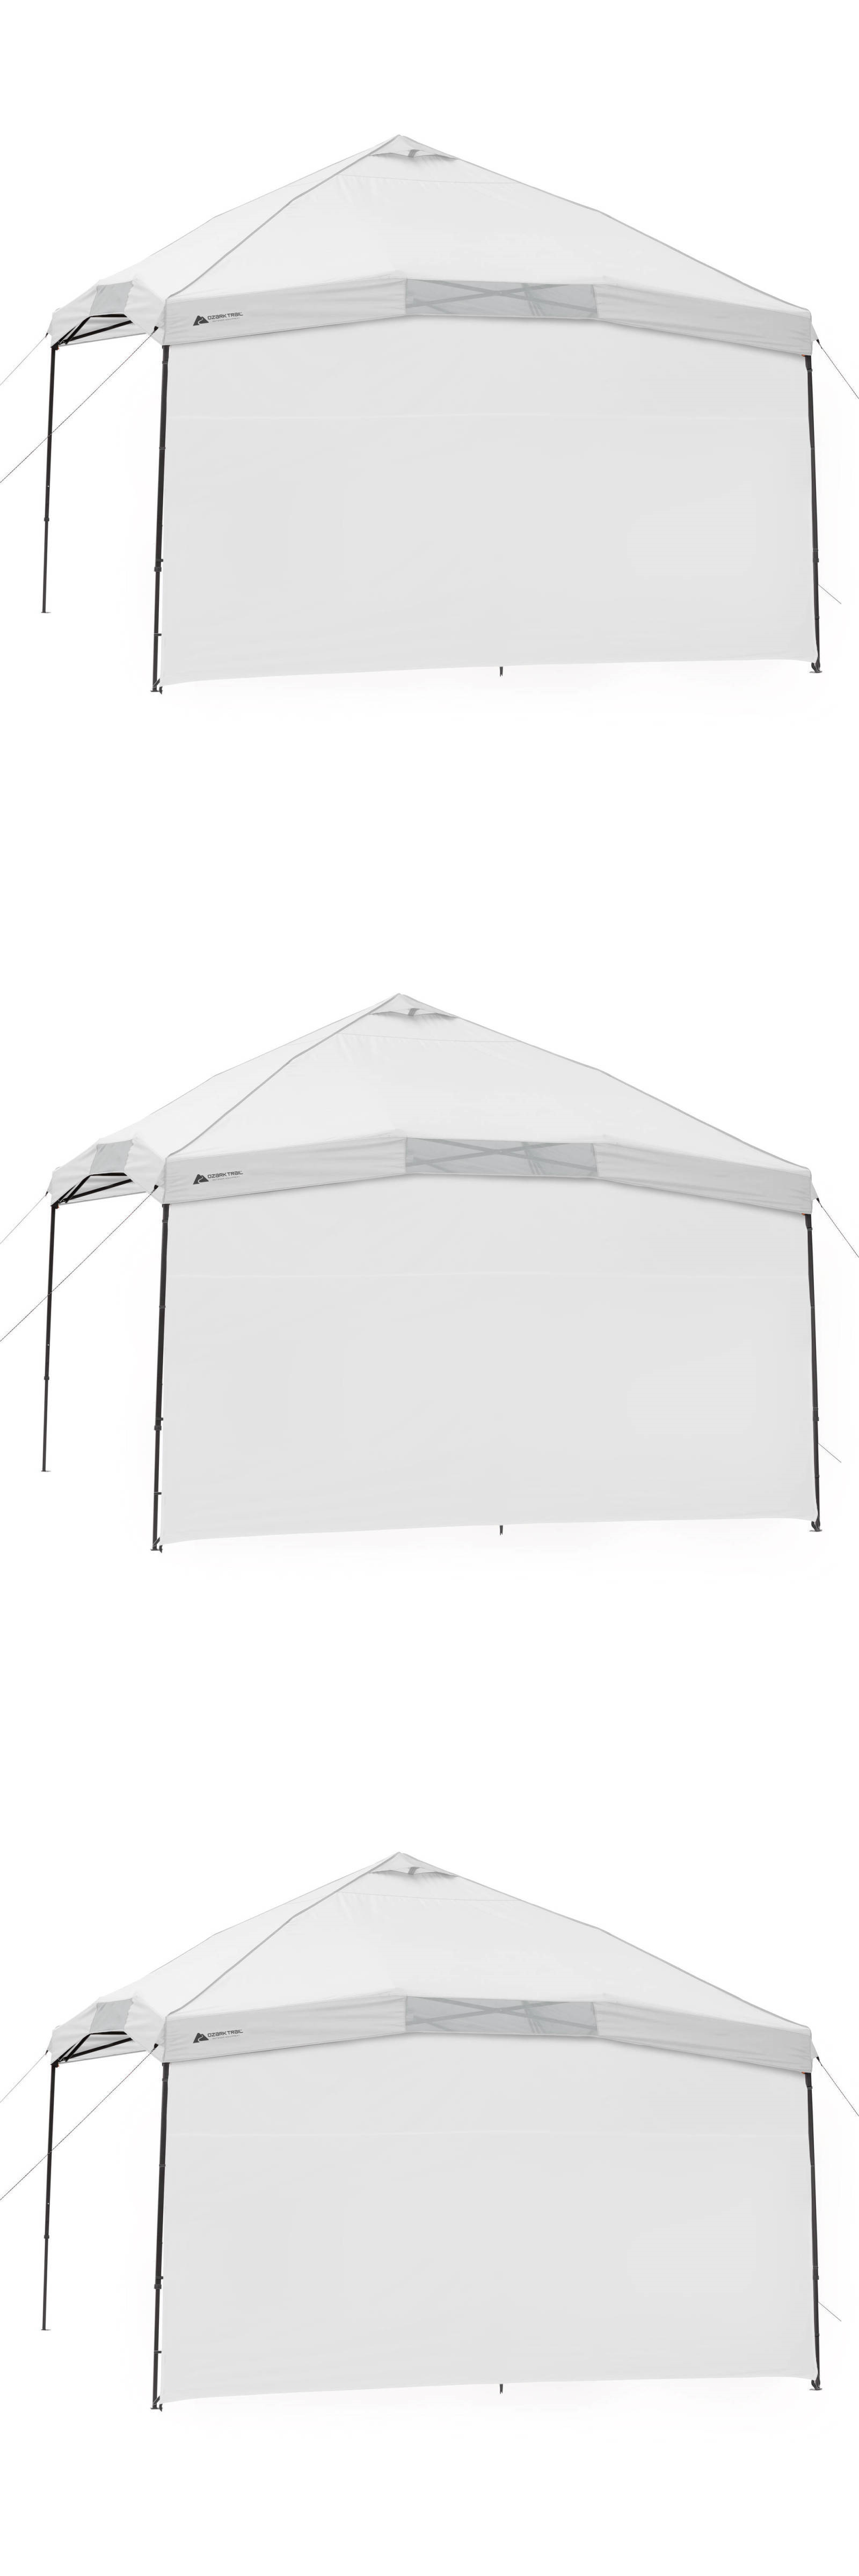 Canopies and Shelters 179011 12 X 12 Gazebo Top Cover Patio Canopy Sun Wall Portable  sc 1 st  Pinterest & Canopies and Shelters 179011: 12 X 12 Gazebo Top Cover Patio ...